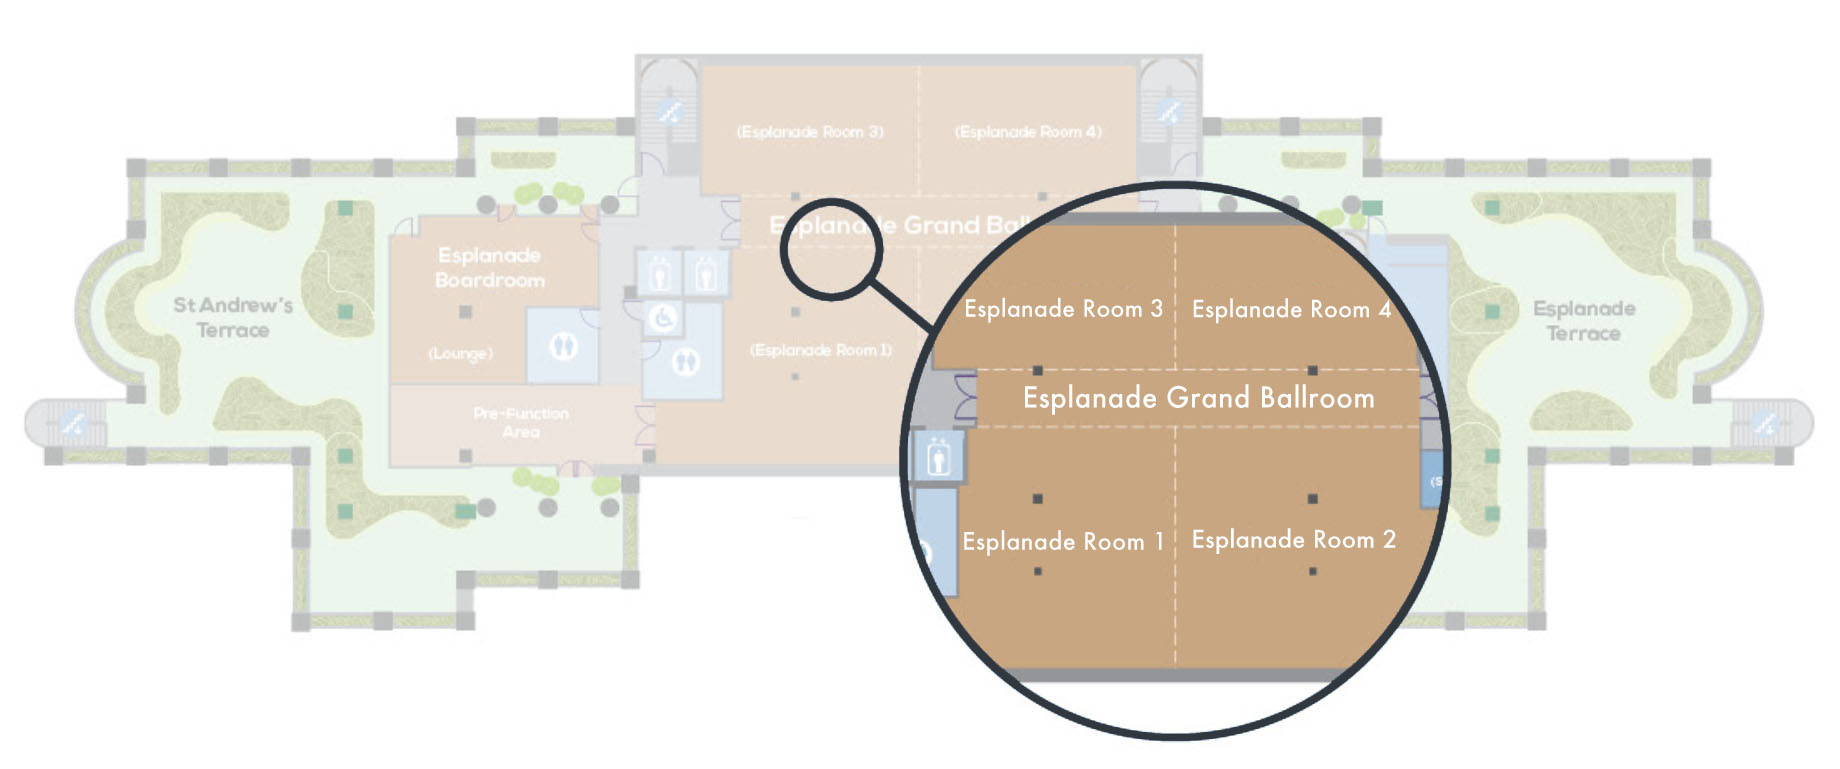 Esplanade Grand Ballroom Floor Plan